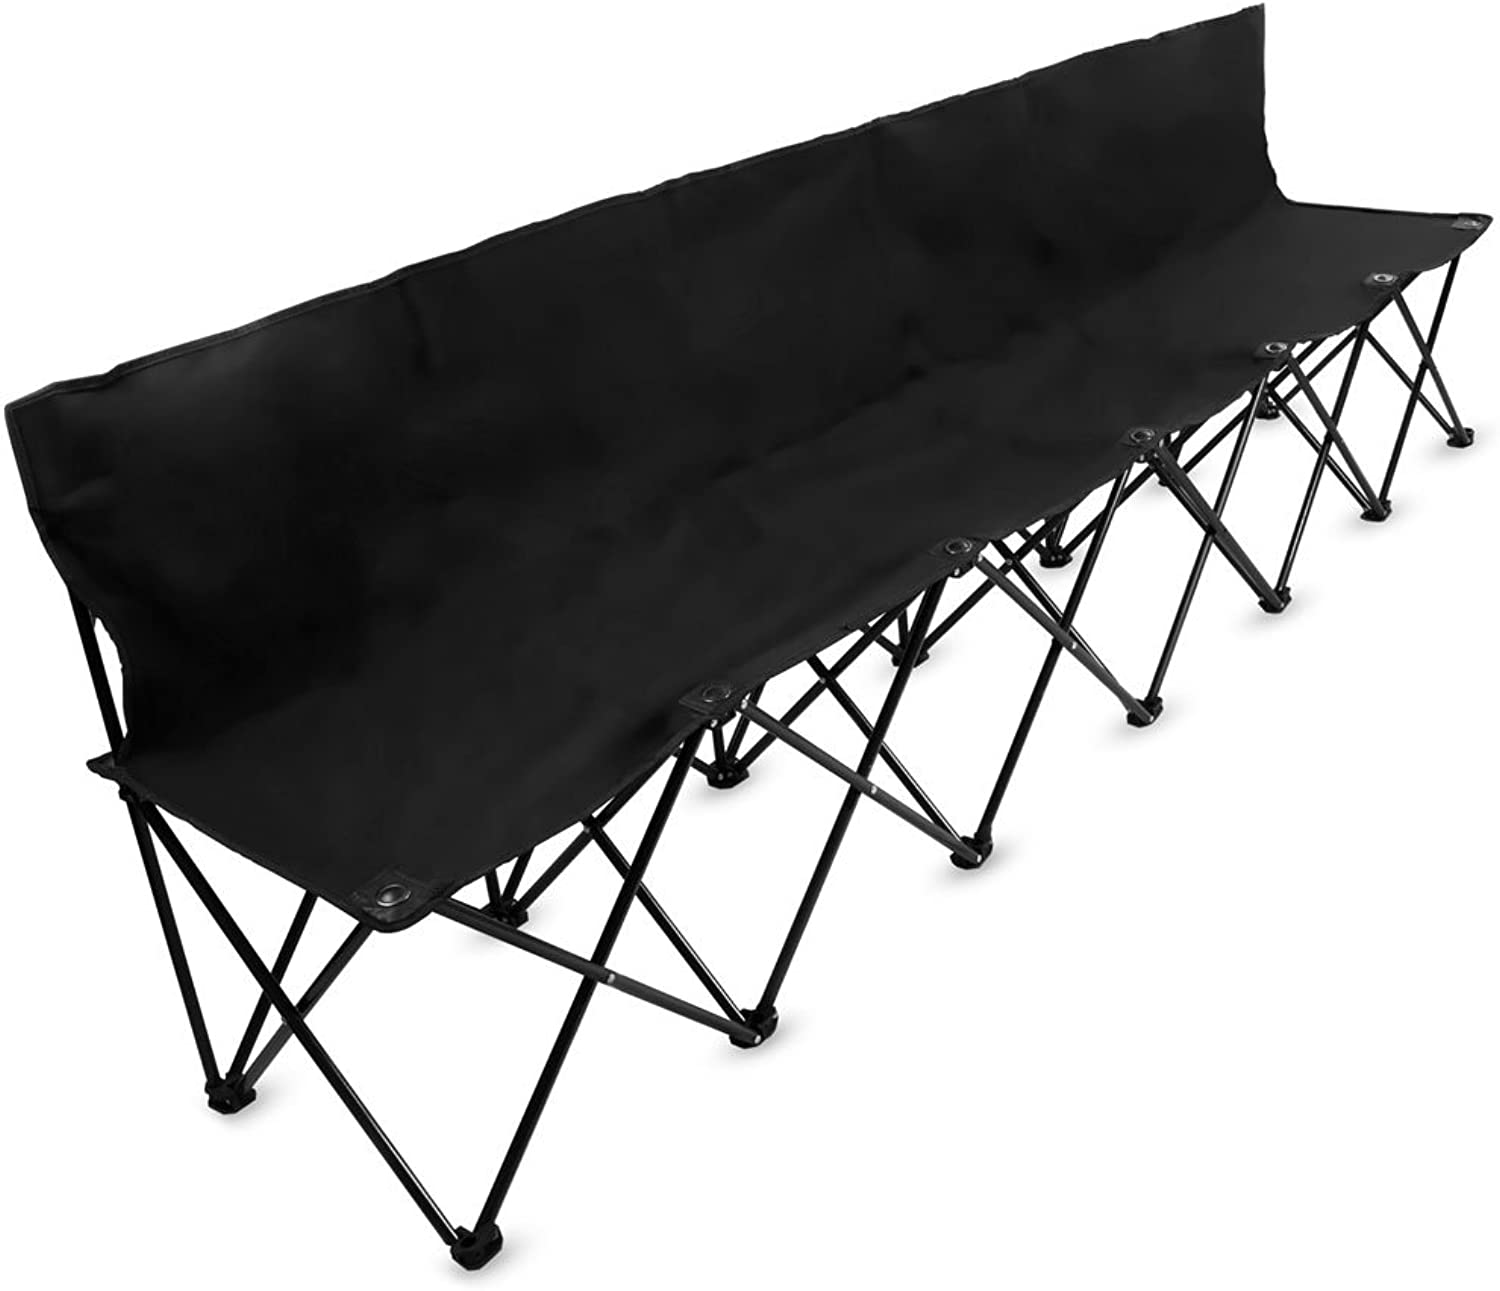 8Foot Portable Folding 6 Seat Bench with Back by Crown Sporting Goods